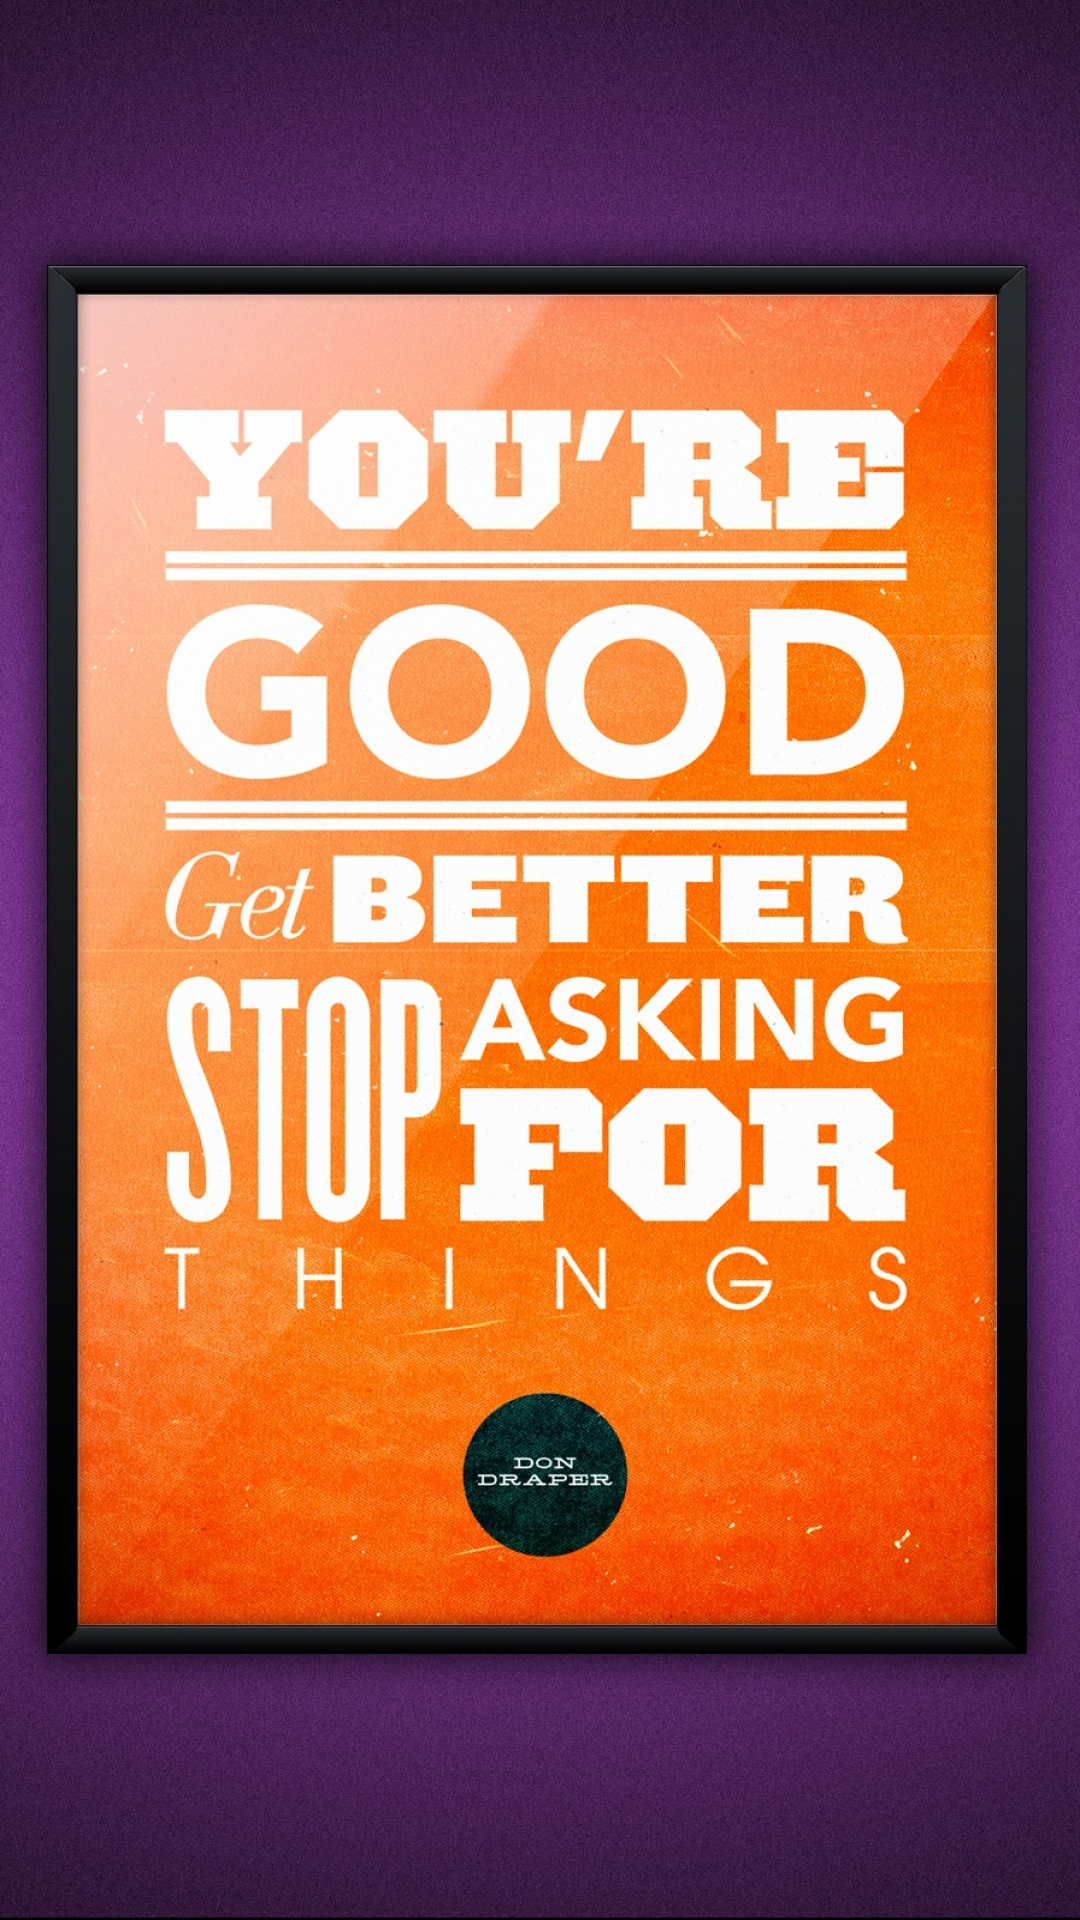 54 Motivational Samsung Galaxy J7 720x1280 Wallpapers Mobile Abyss